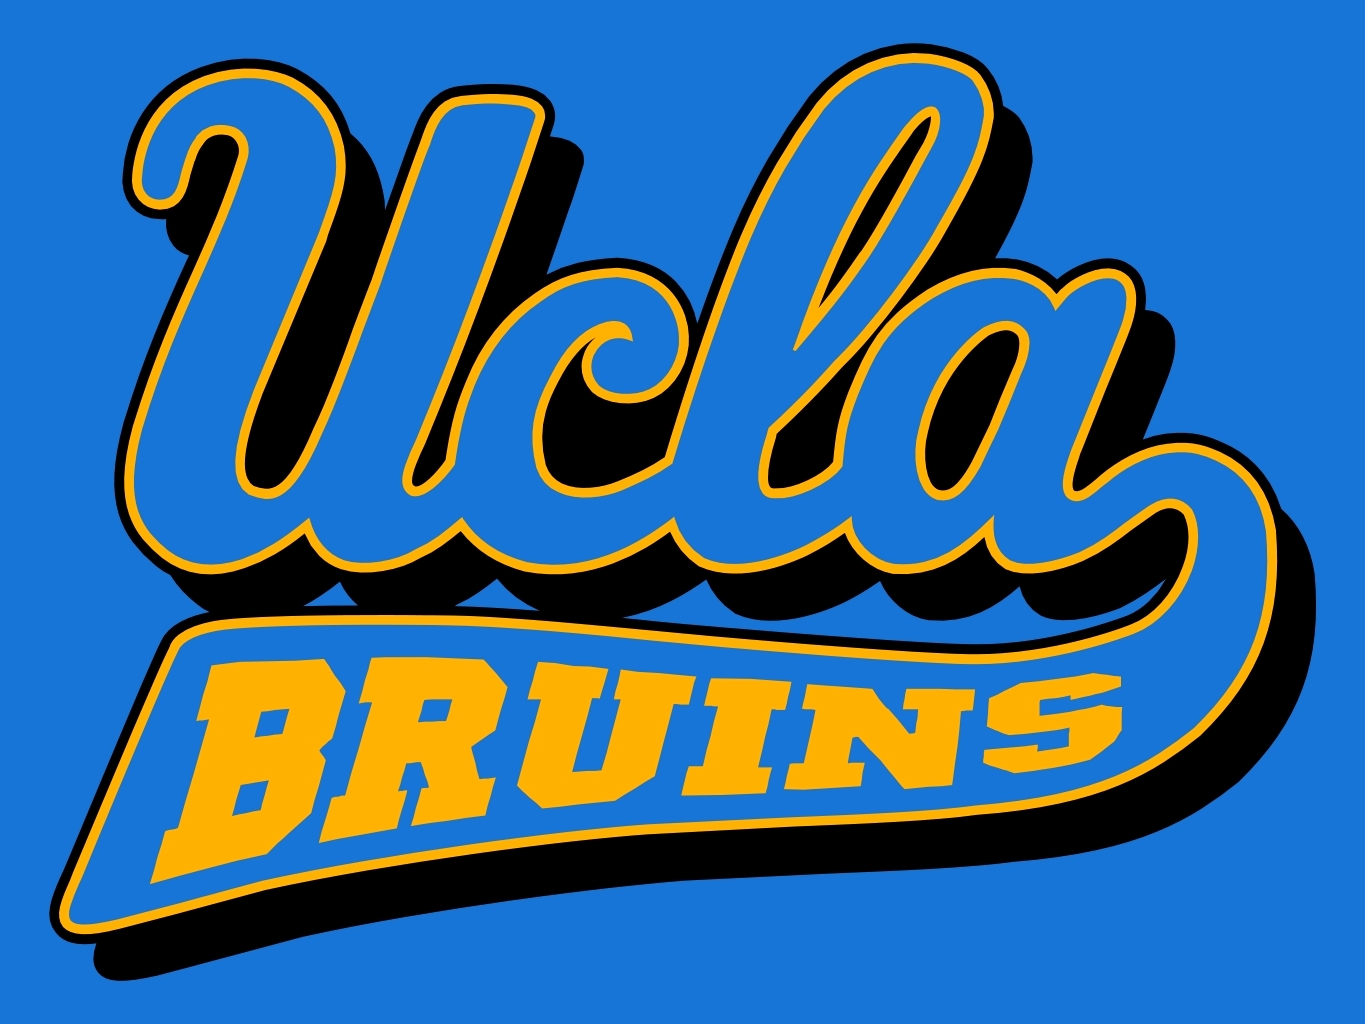 Ucla logo clip art image royalty free library Bruins desktop clipart - ClipartFox image royalty free library